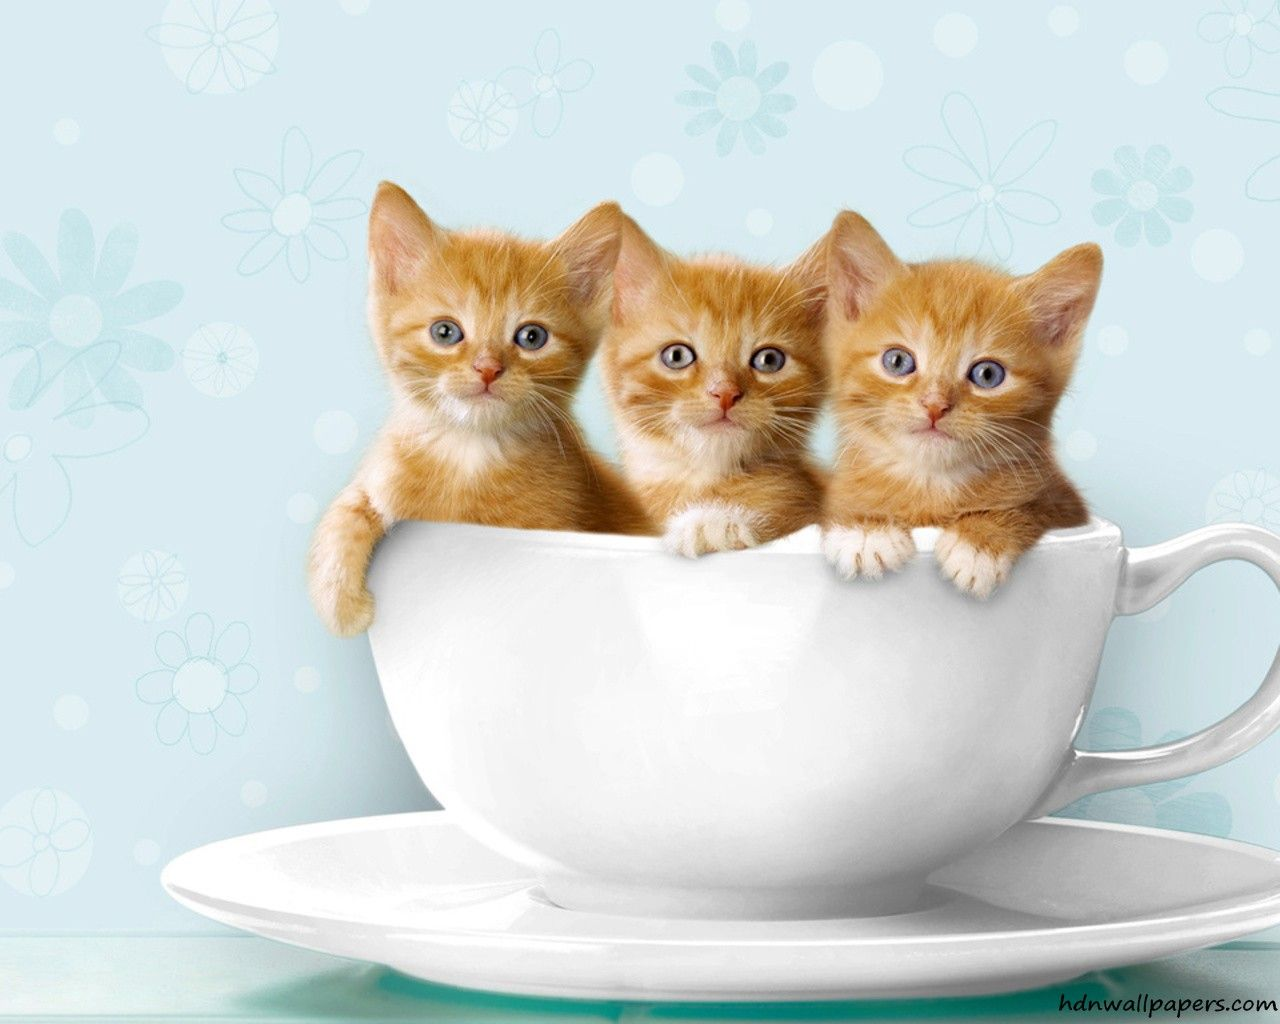 Kittens wallpaper ·① Download free stunning full HD wallpapers for